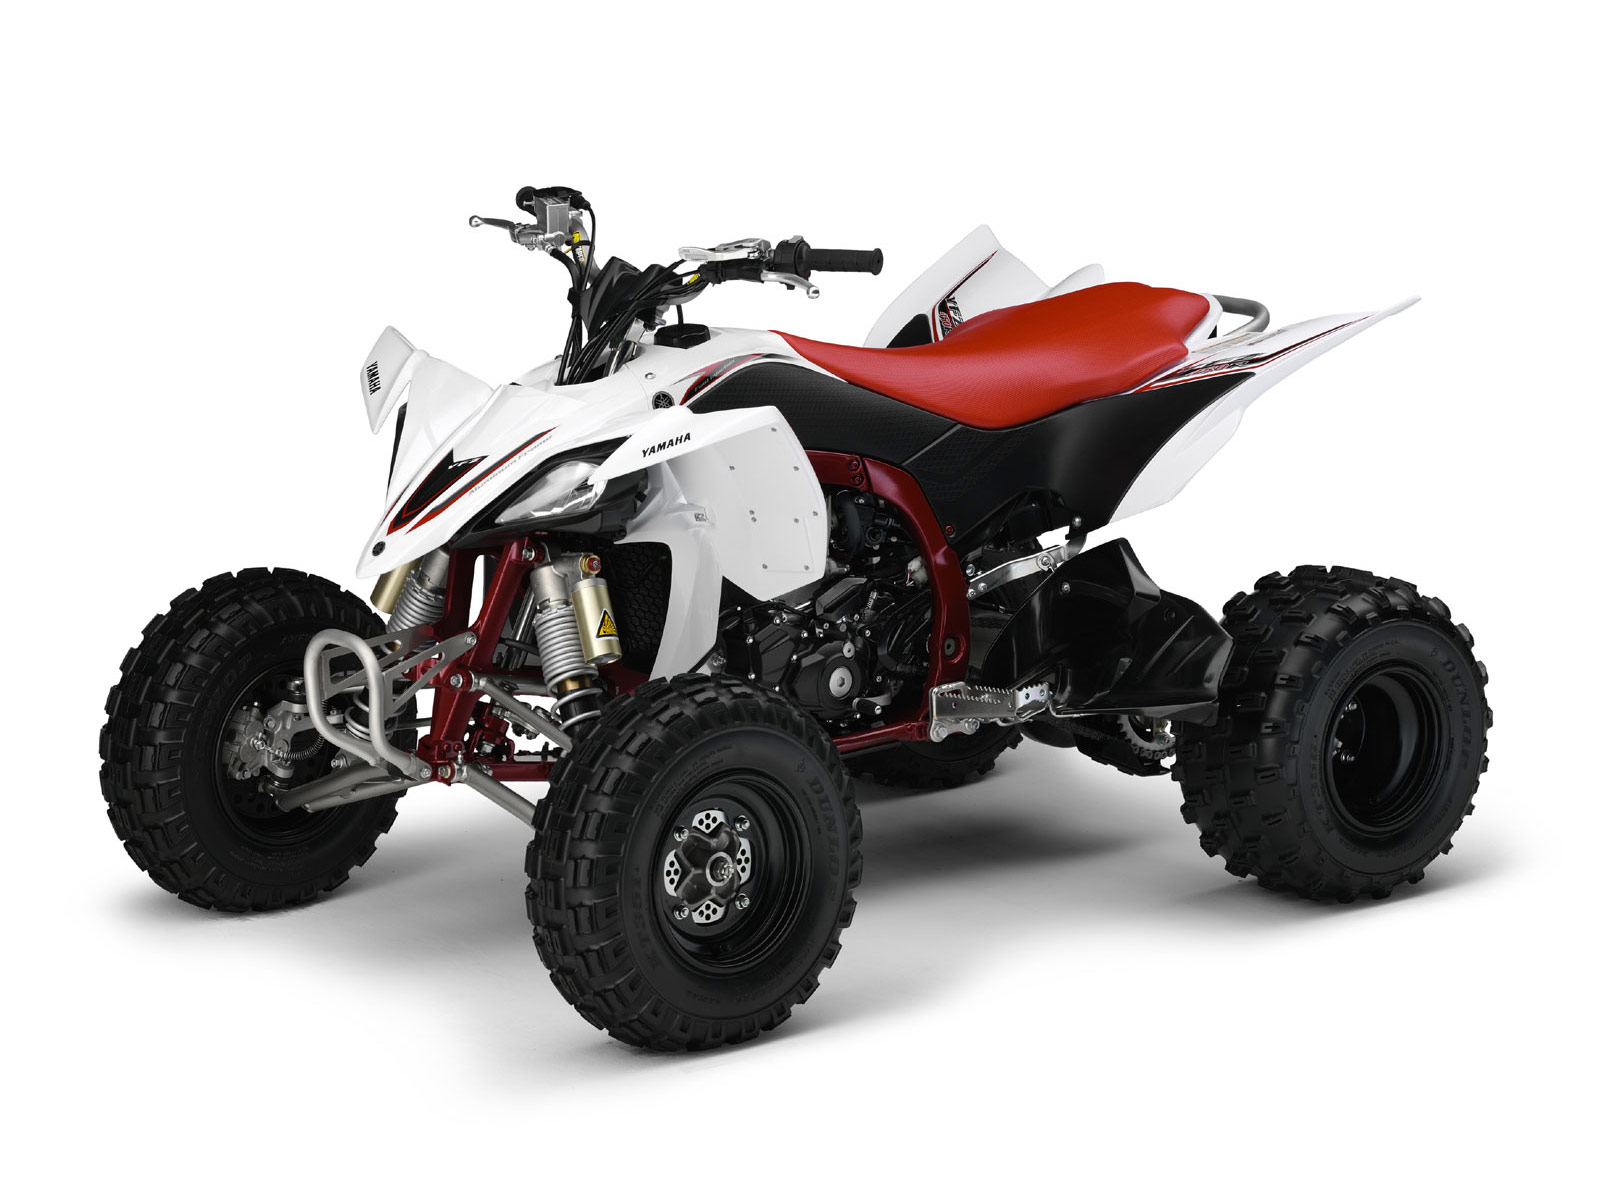 6 10 12 6 17 12 for What year is my yamaha atv